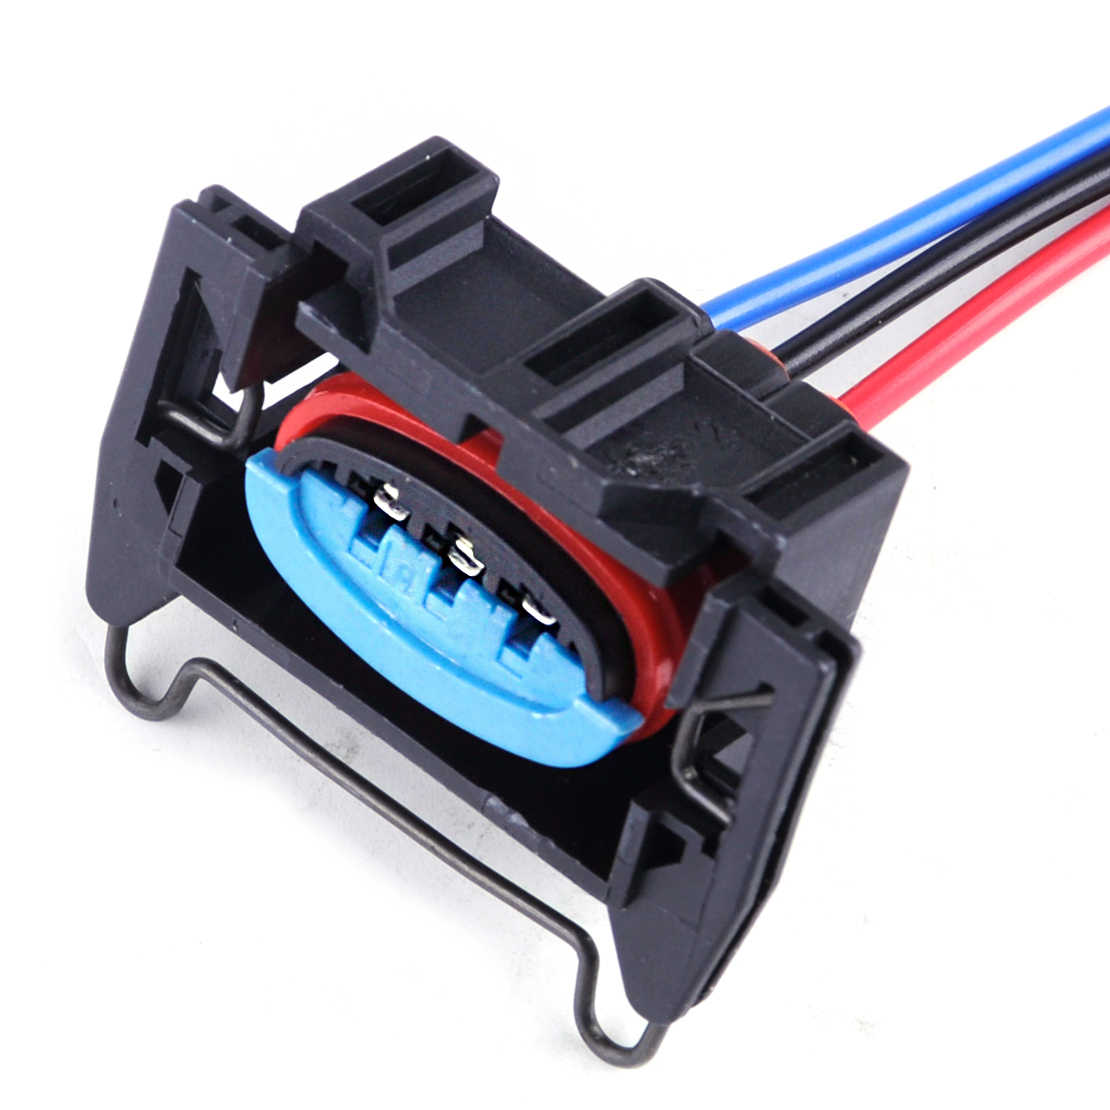 hight resolution of  beler ignition coil pack wiring harness connector fit for ford mazda 645 302 3u2z14s411tna 1p1727